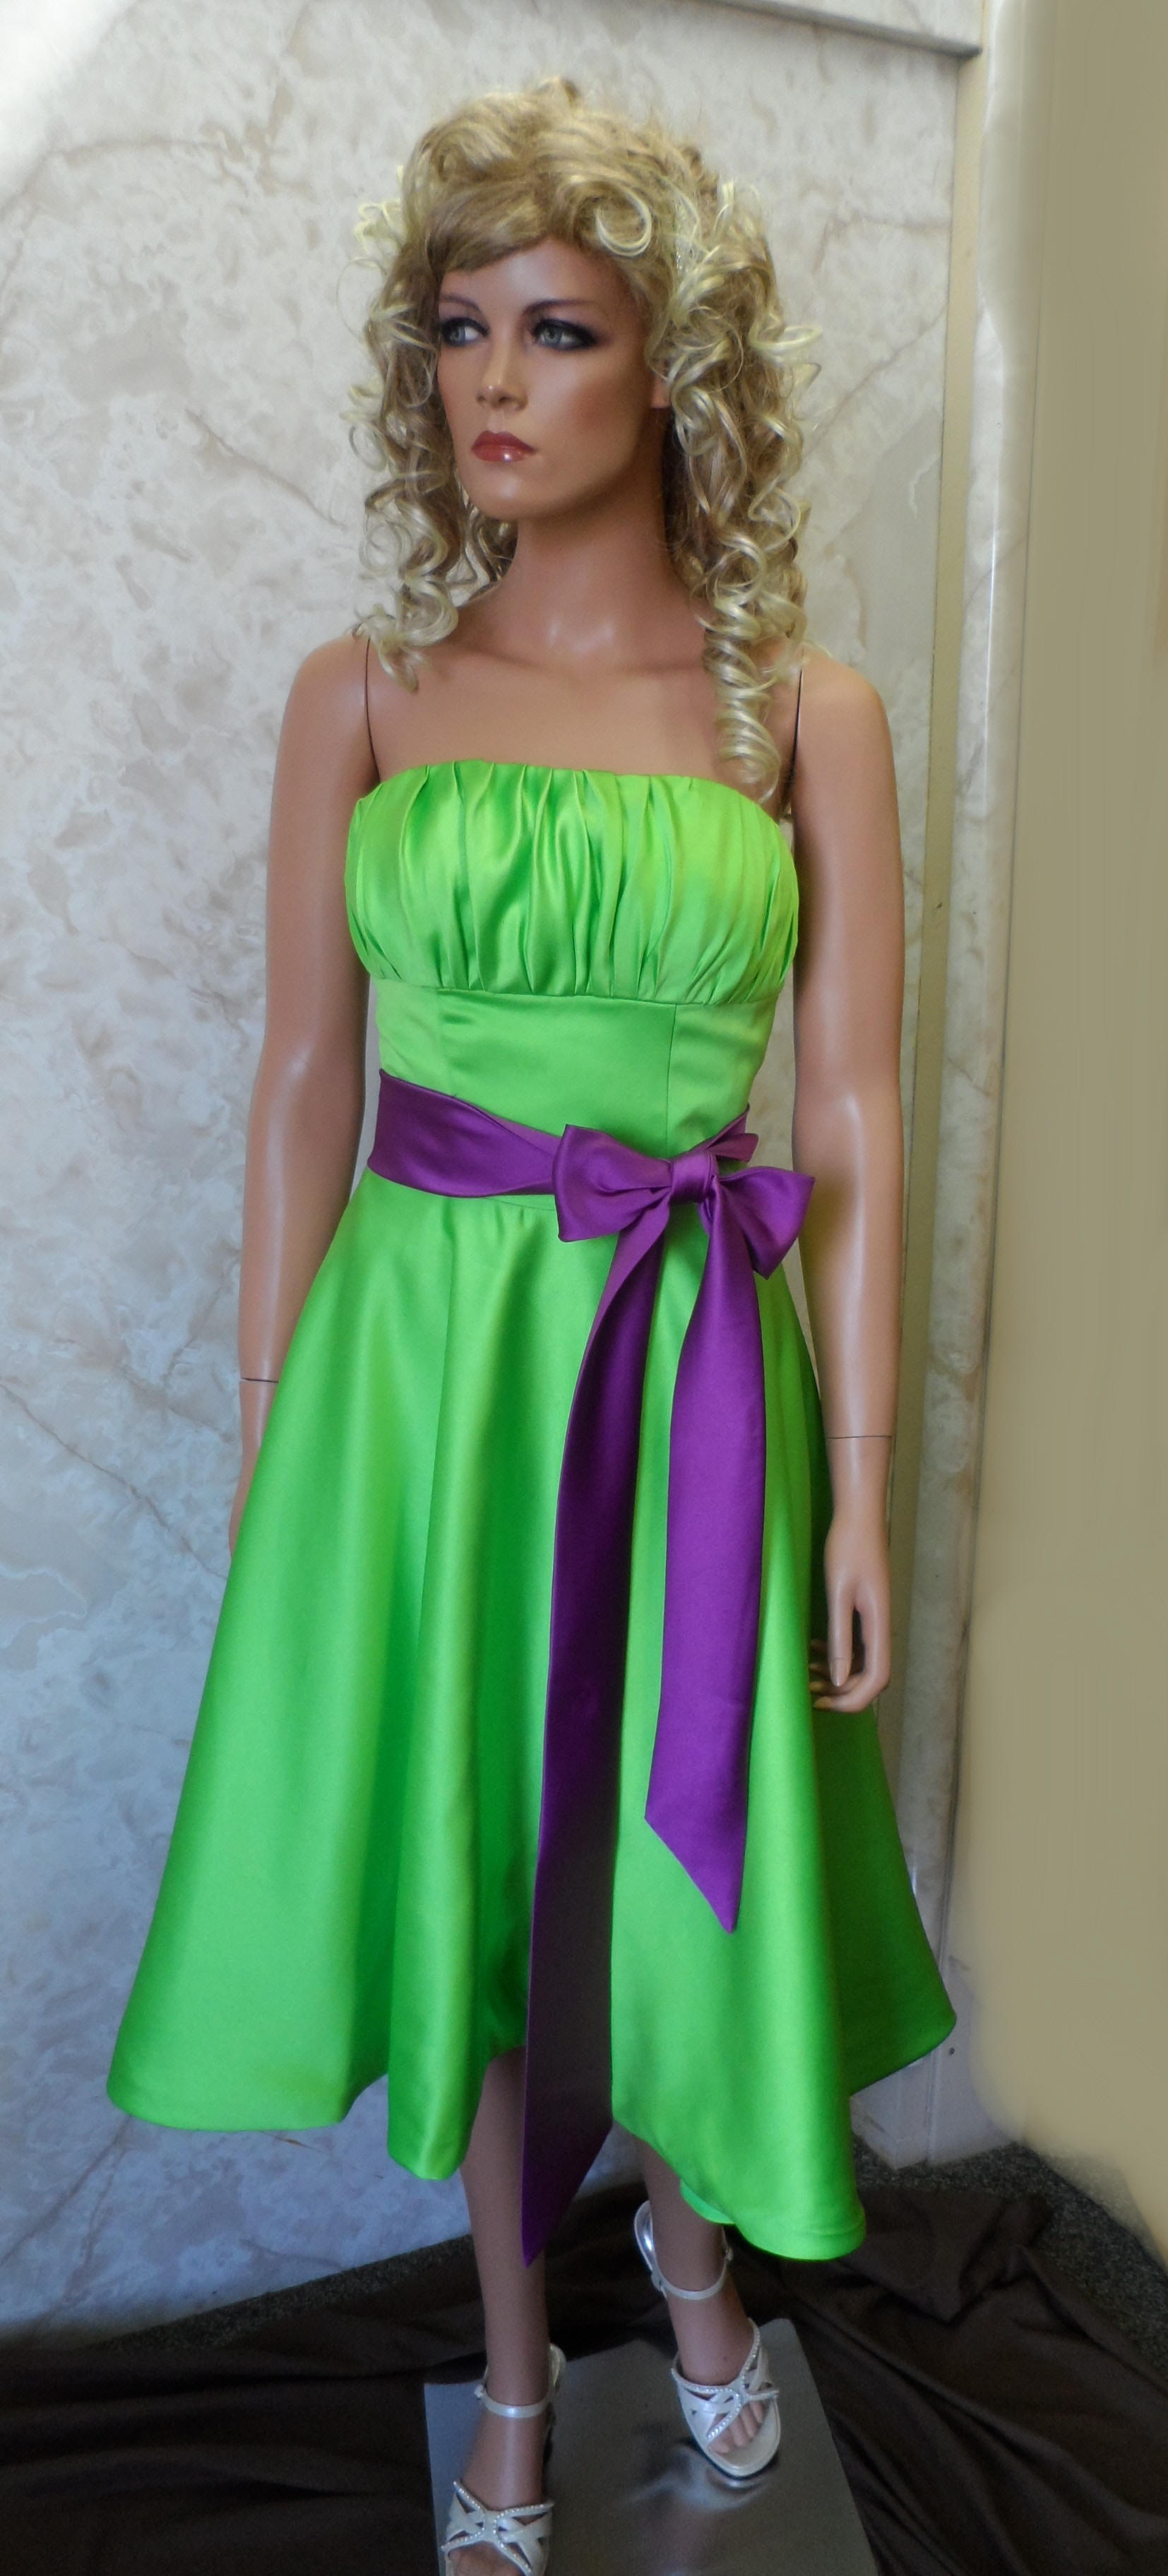 Short strapless brown dresses for Short green wedding dresses